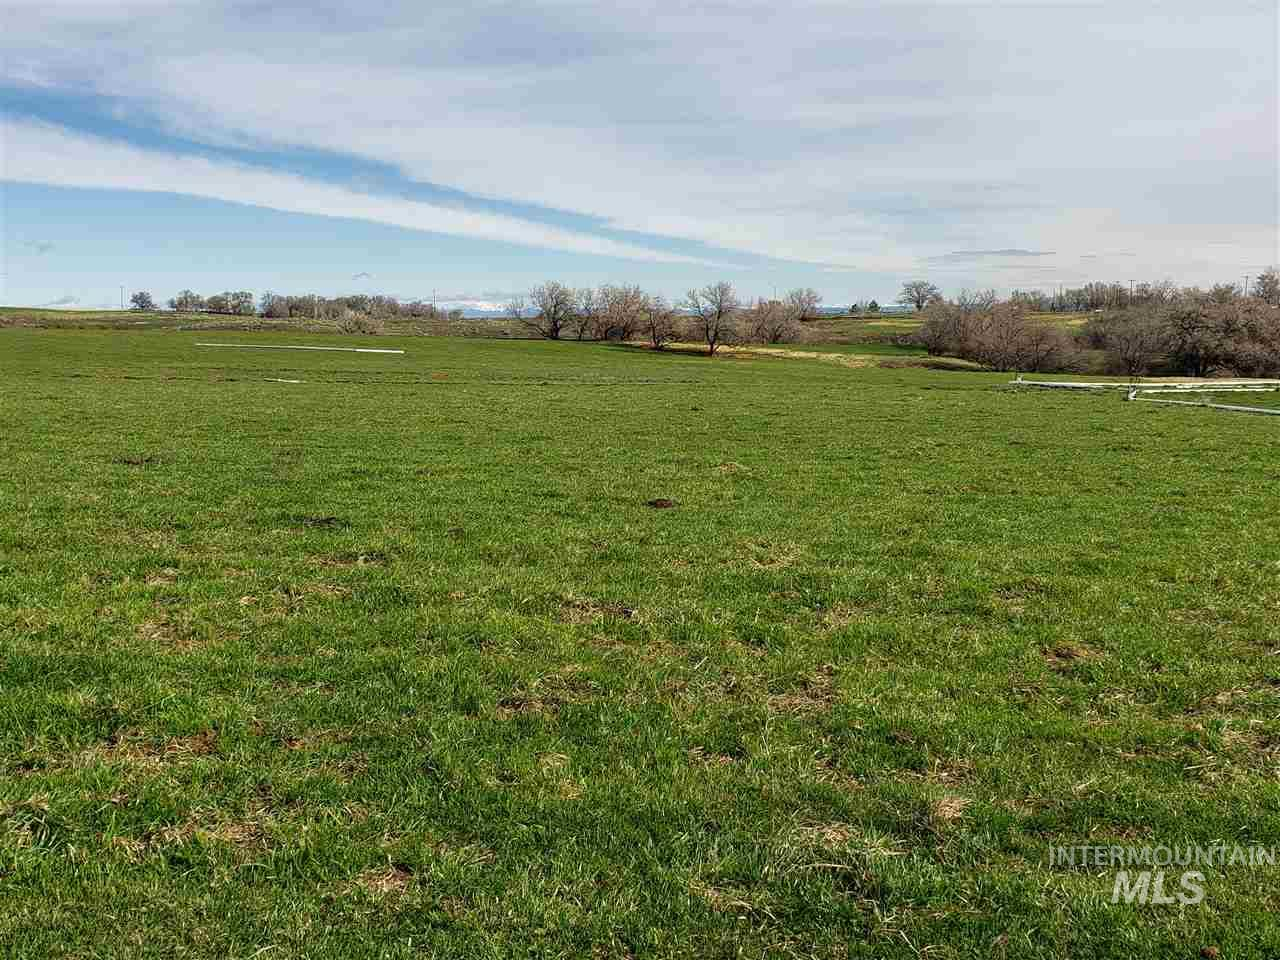 Approx. 1125 E 4300 N, Buhl, Idaho 83316, Land For Sale, Price $299,900, 98730899